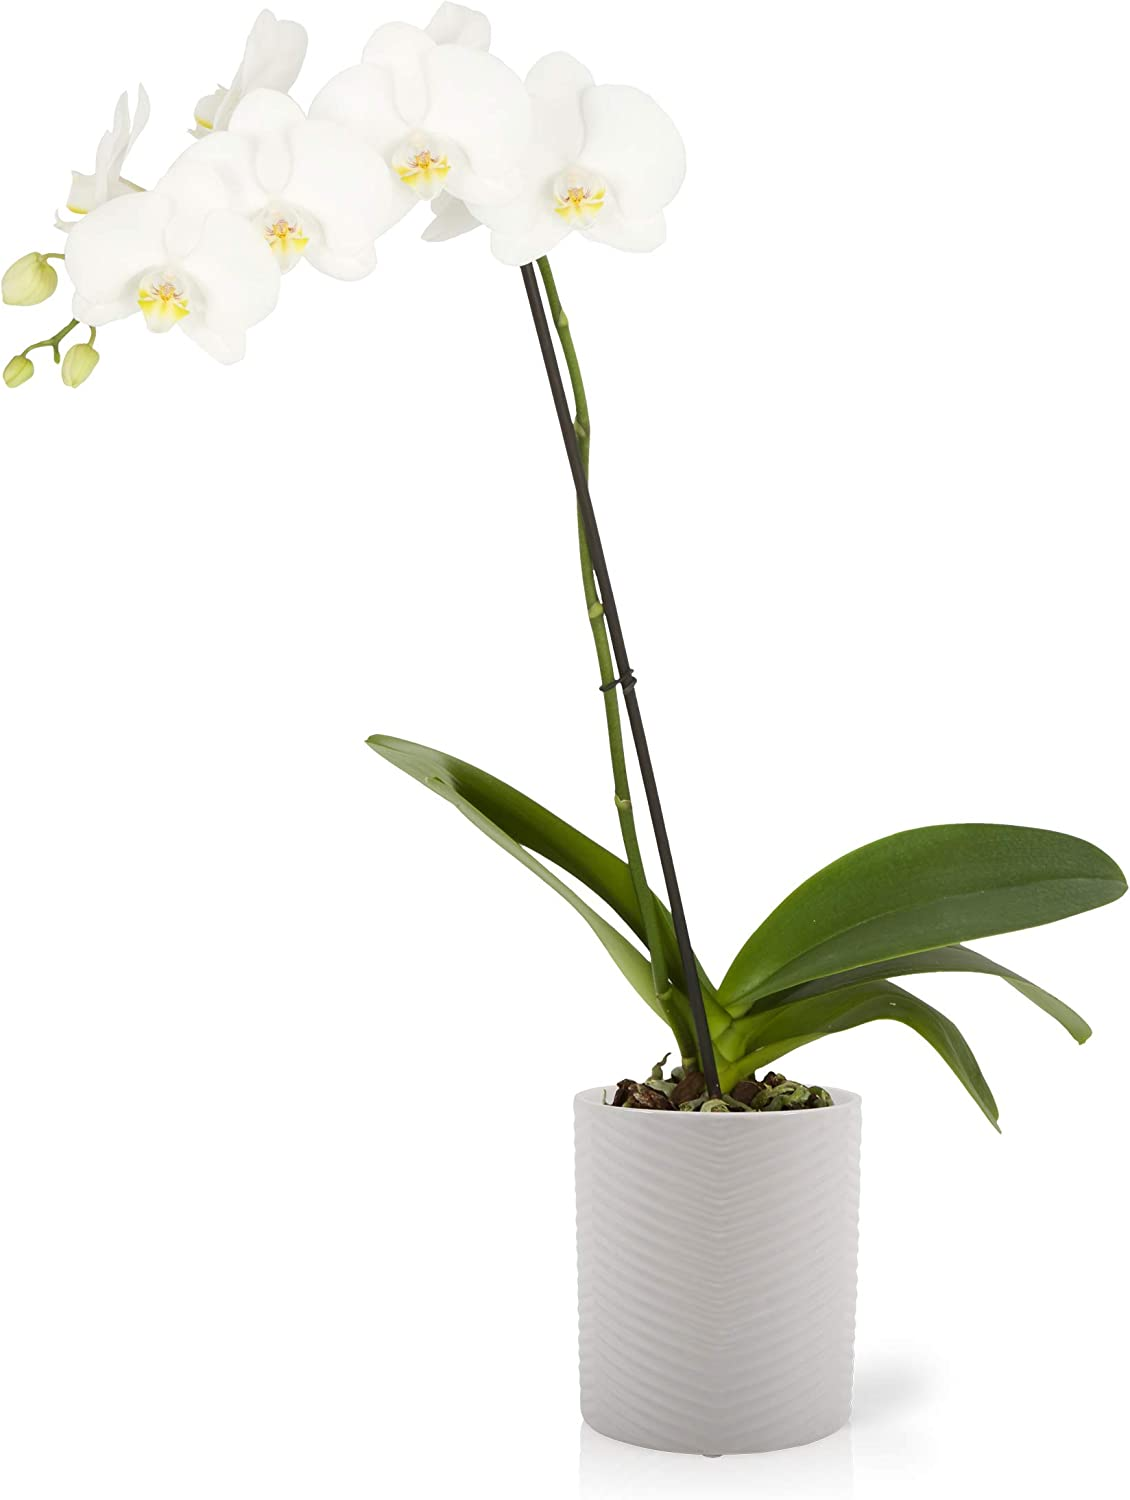 Amazon Com Color Orchids 1 Live Blooming Single Stem Phalaenopsis